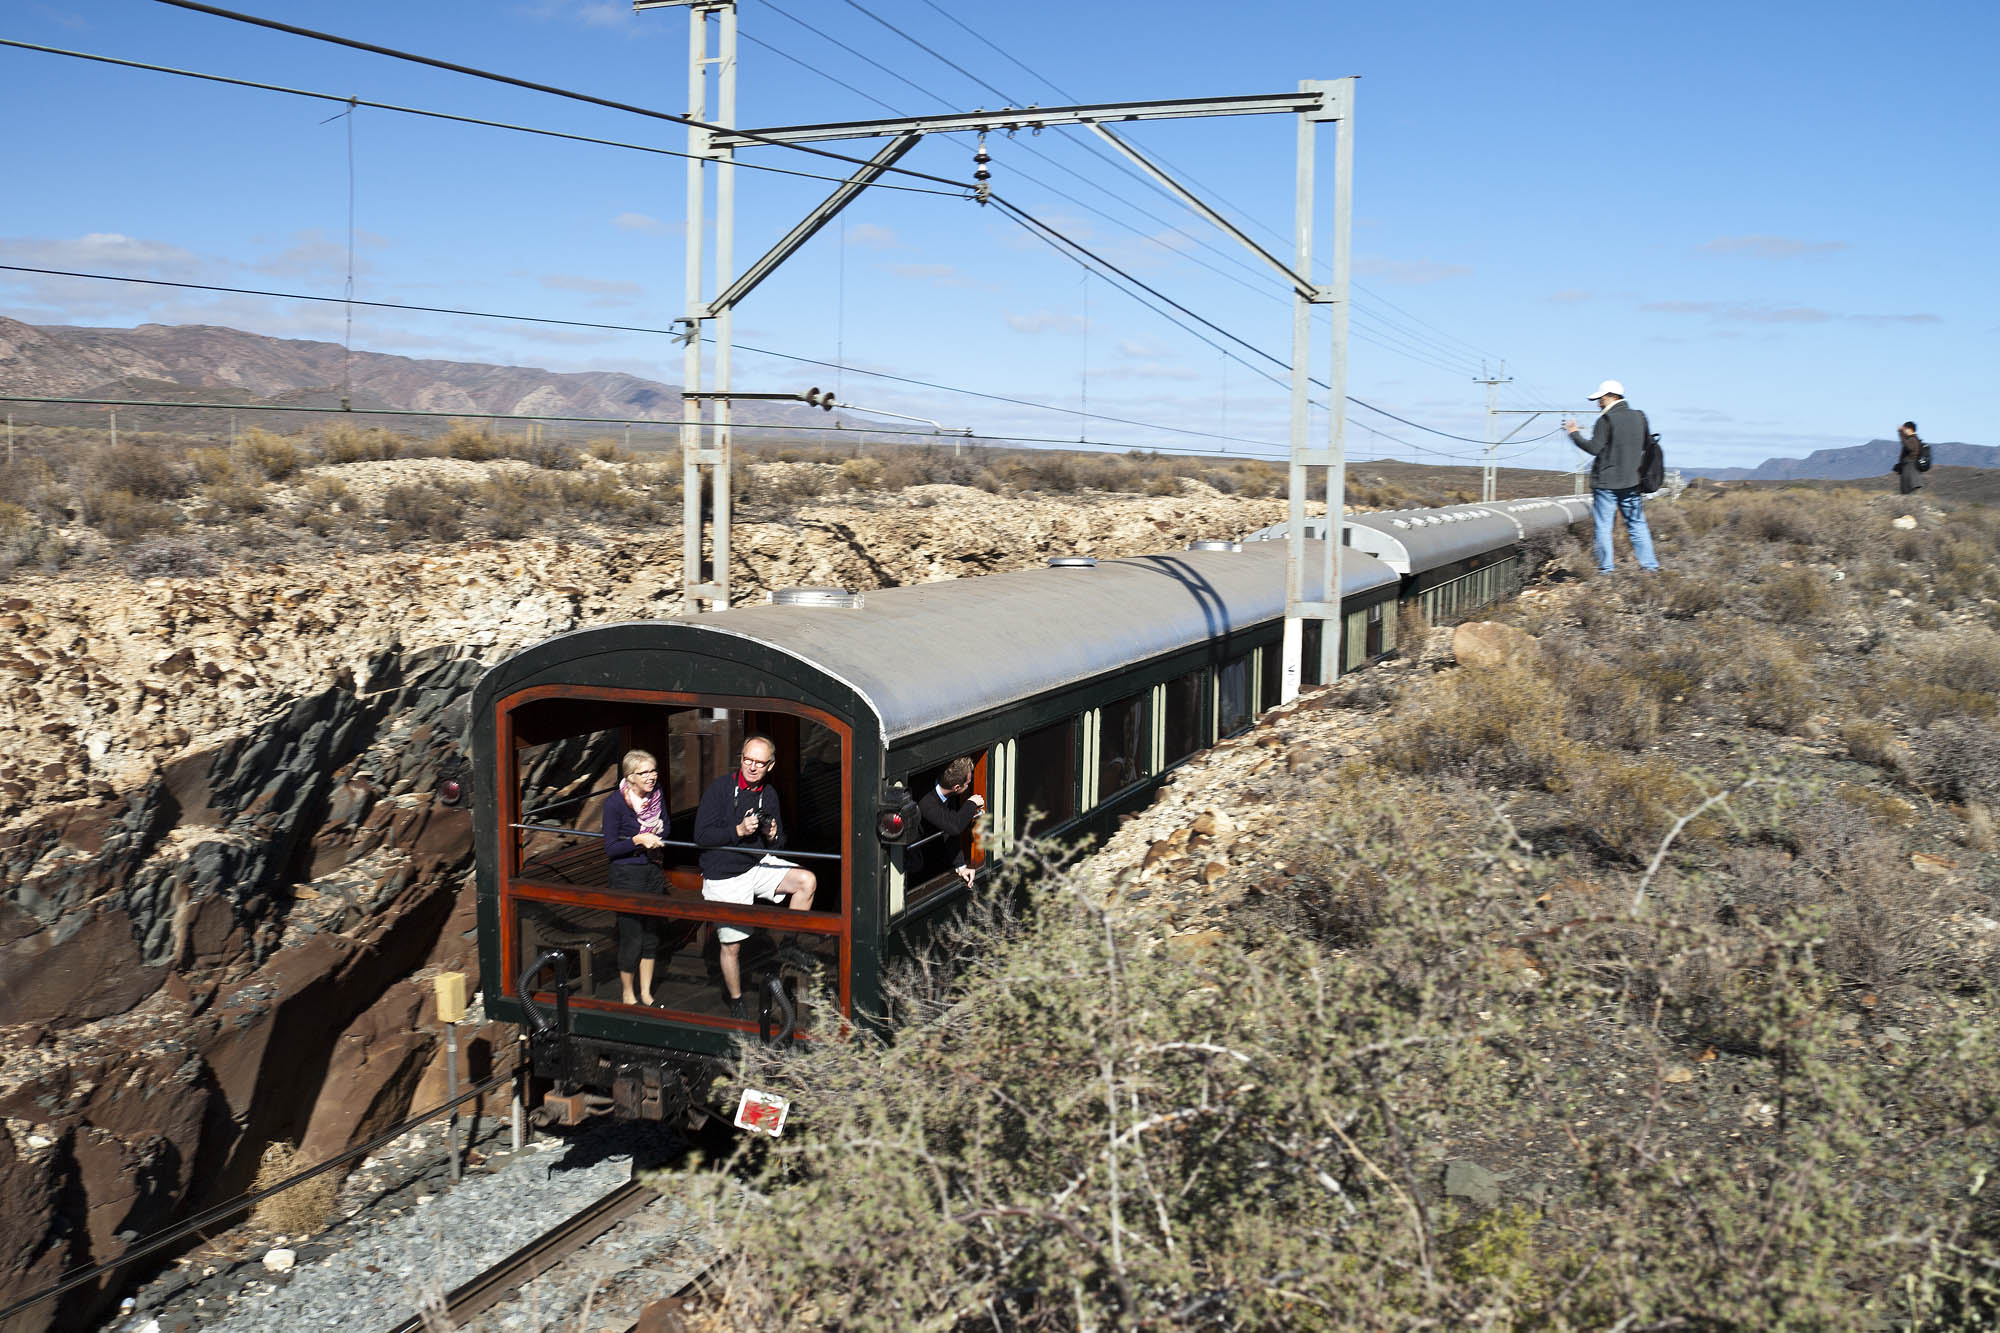 A look atthe Observation Carriage